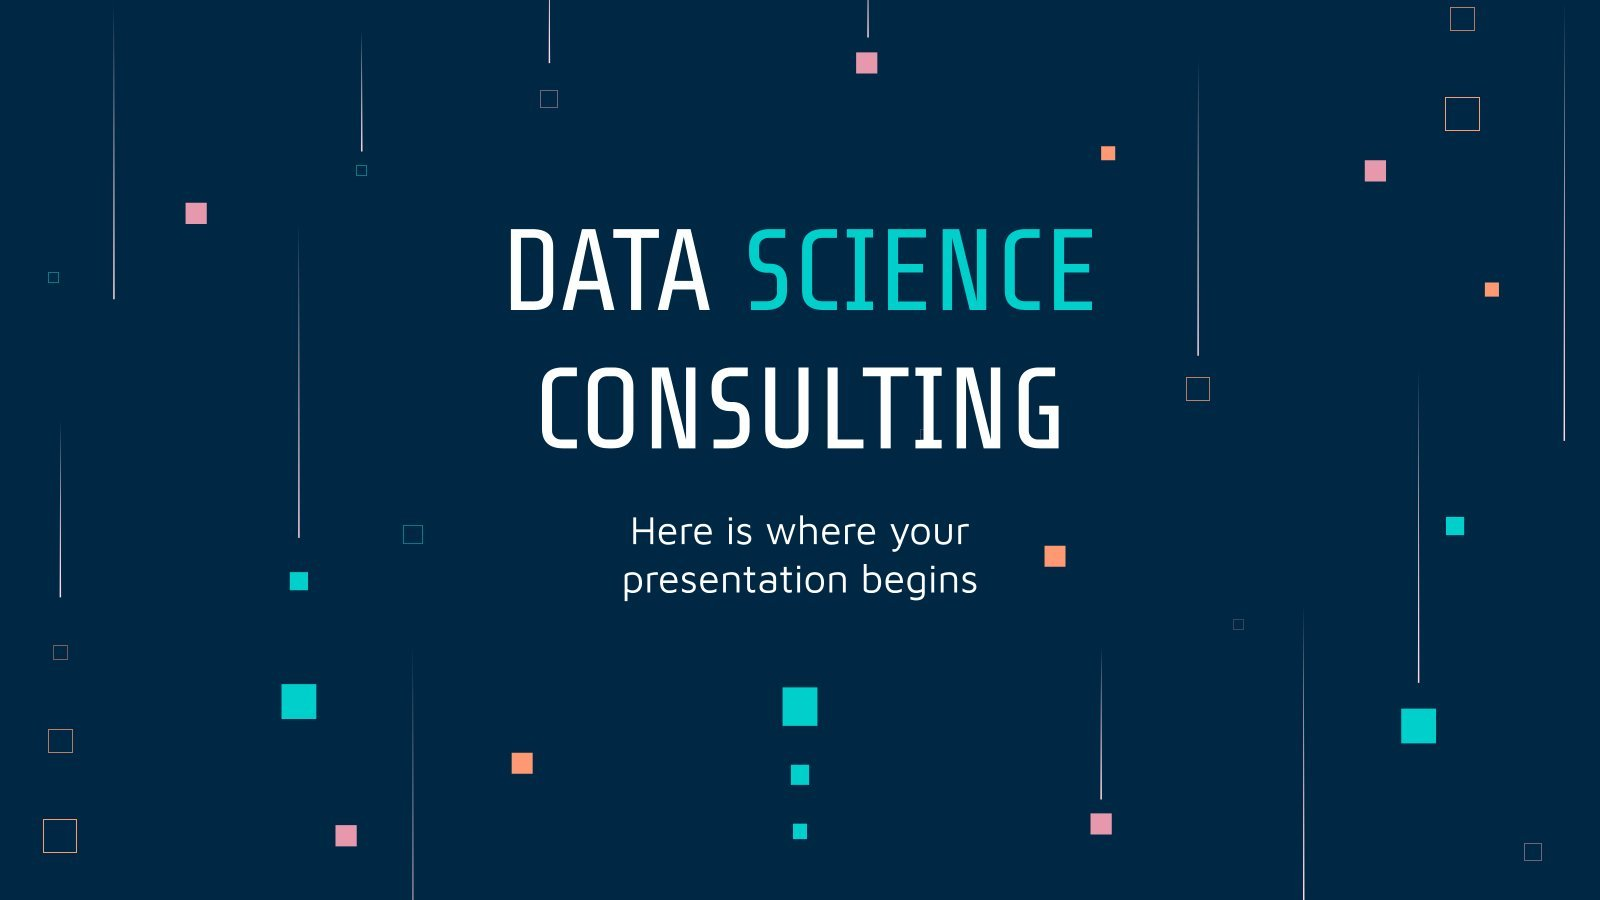 Data Science Consulting presentation template